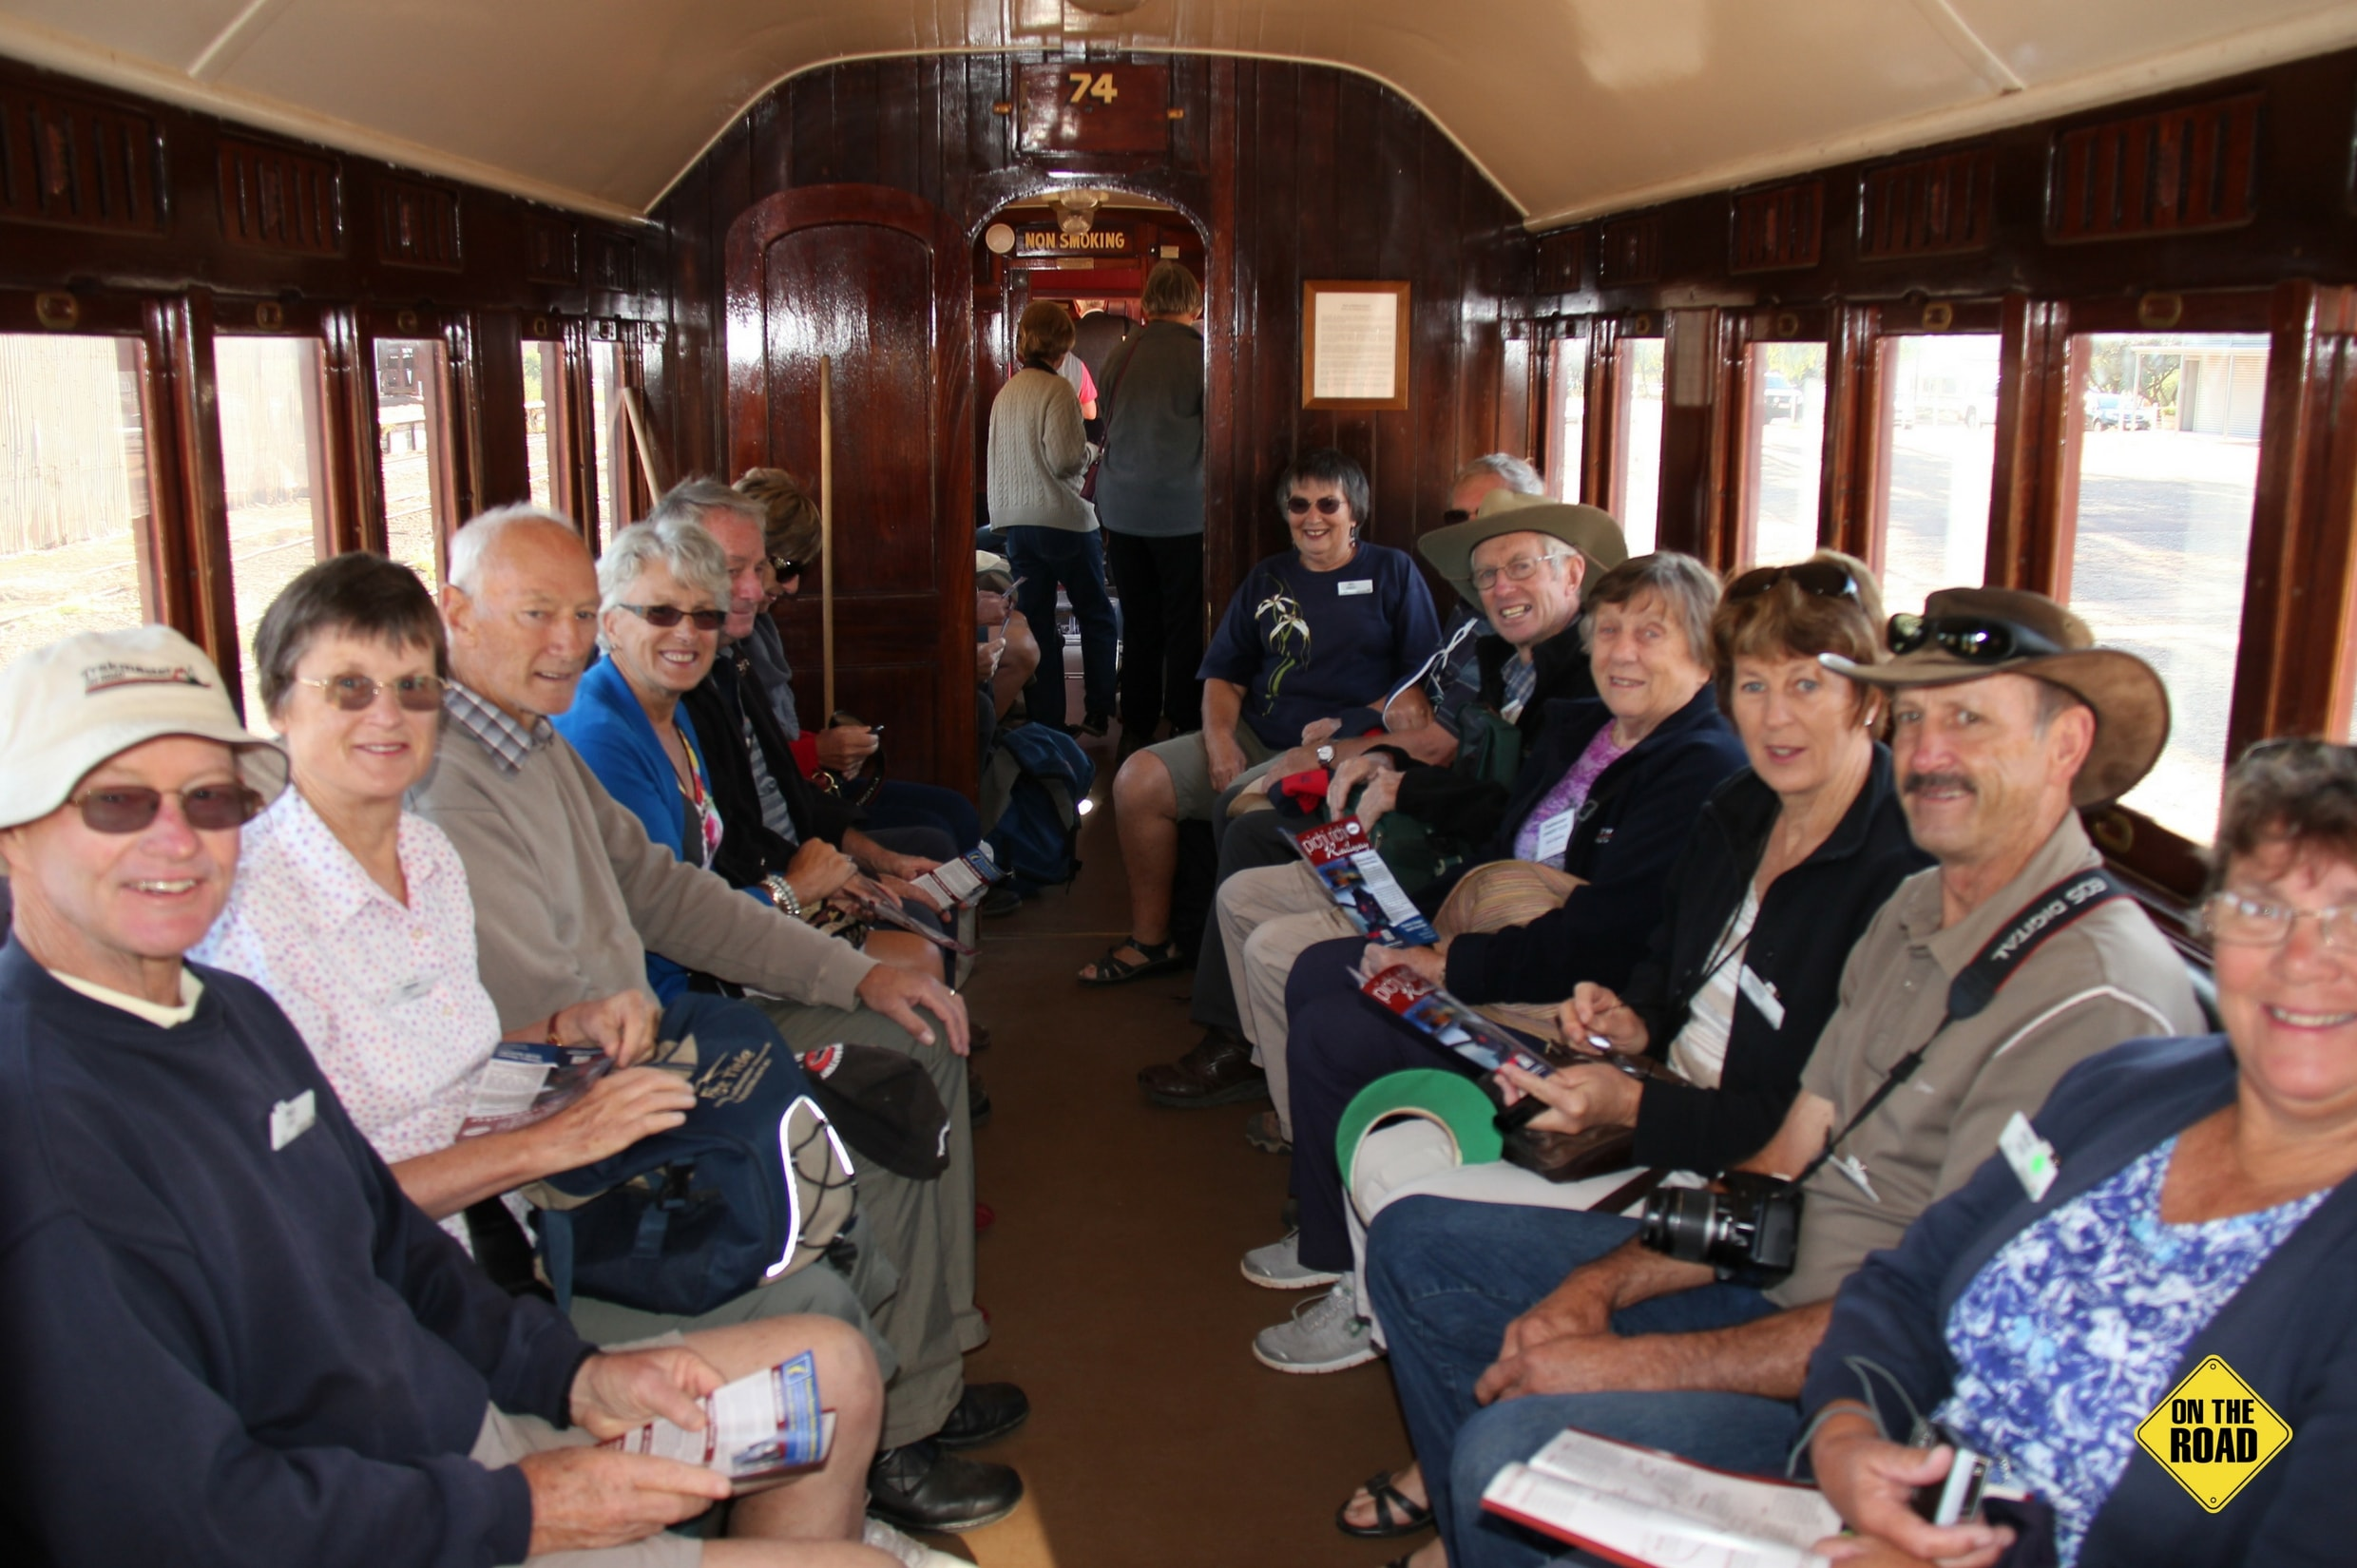 A happy group on board a fully restored PRR carriage